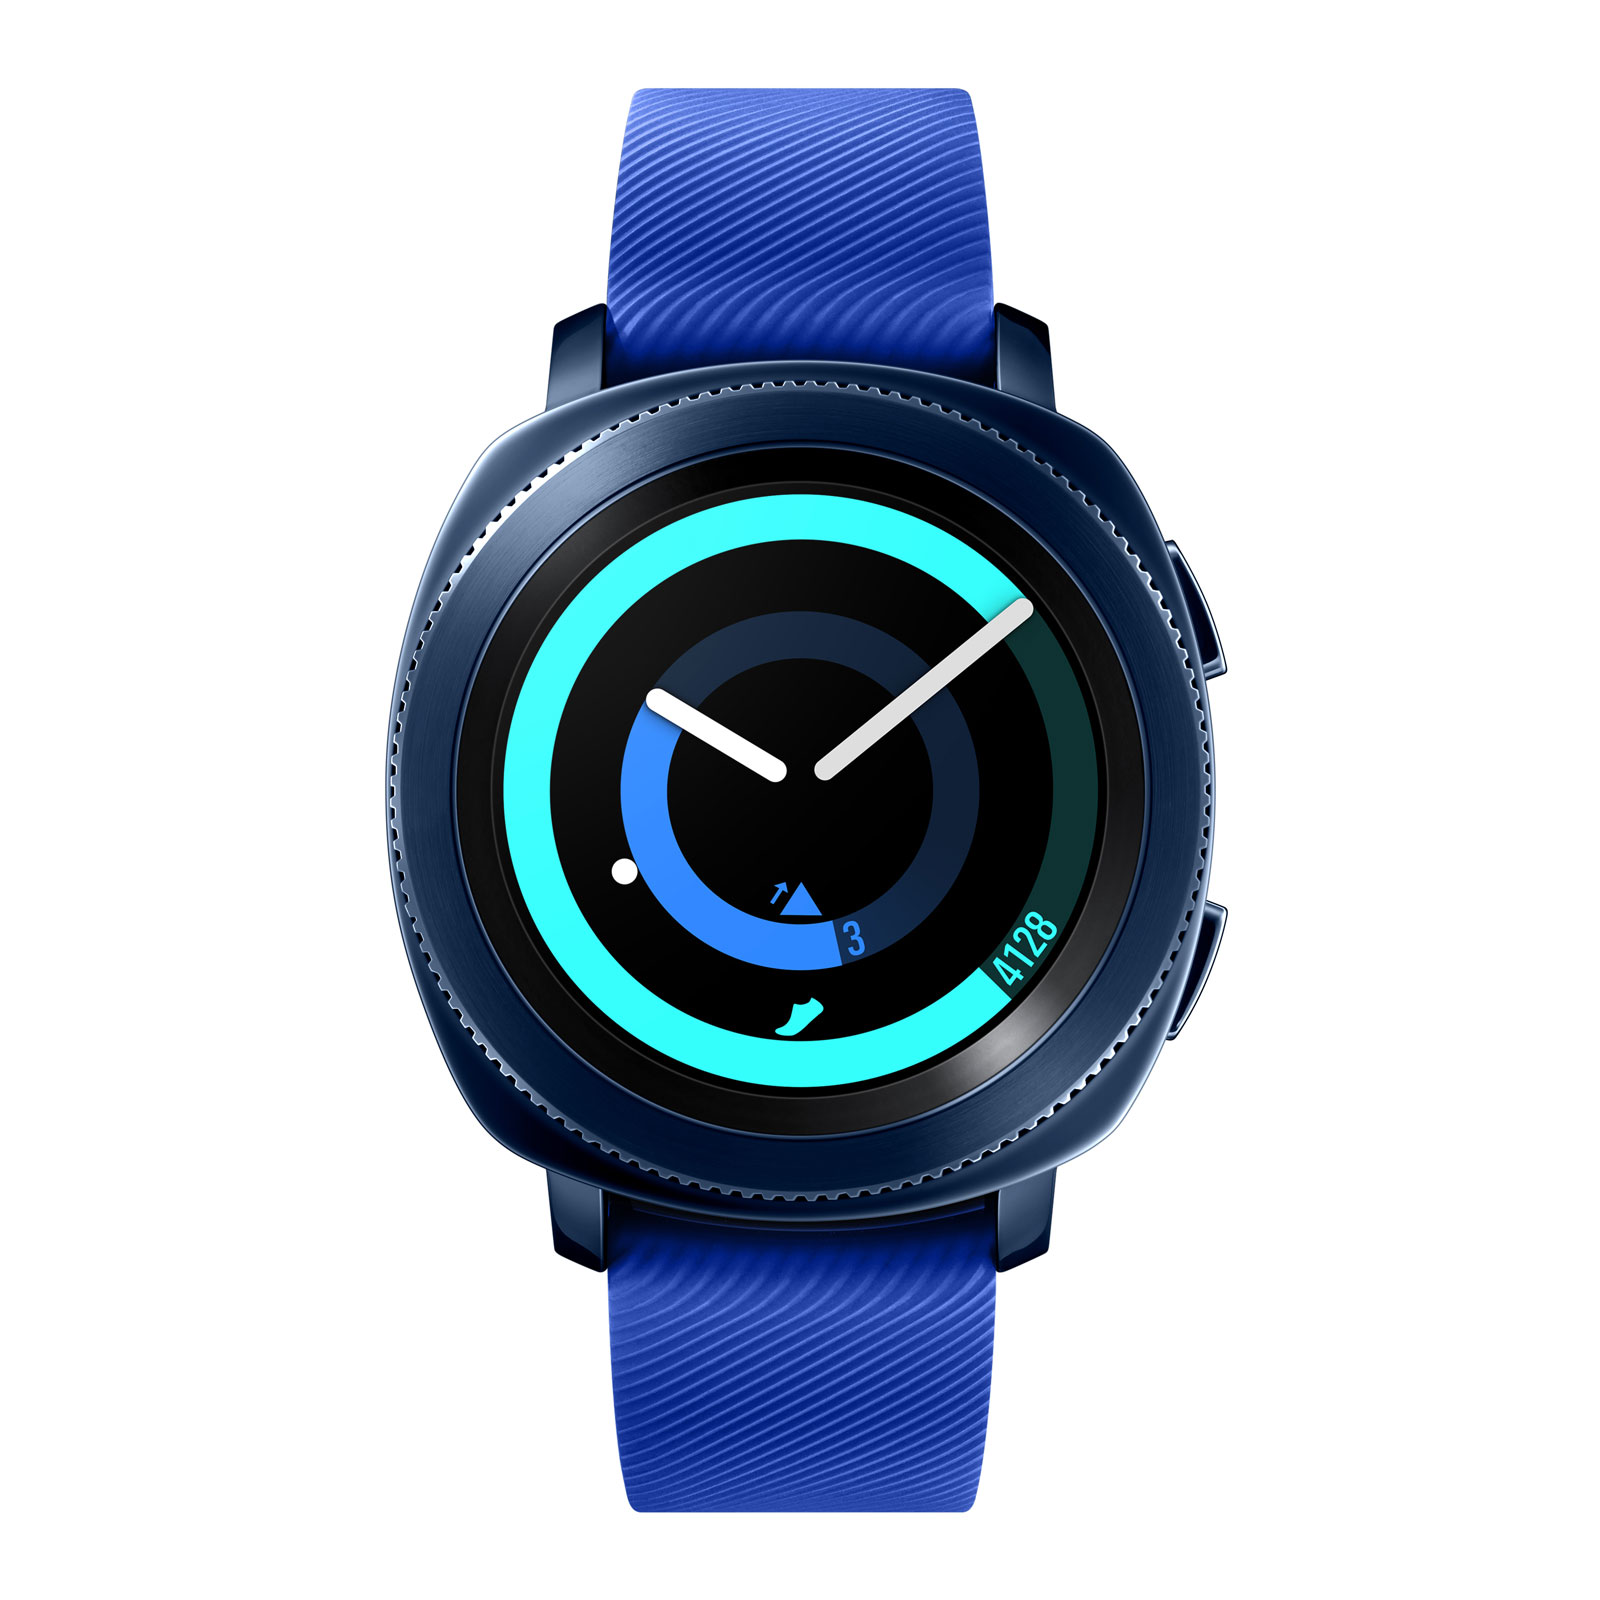 samsung gear sport bleu nuit montre connect e samsung. Black Bedroom Furniture Sets. Home Design Ideas